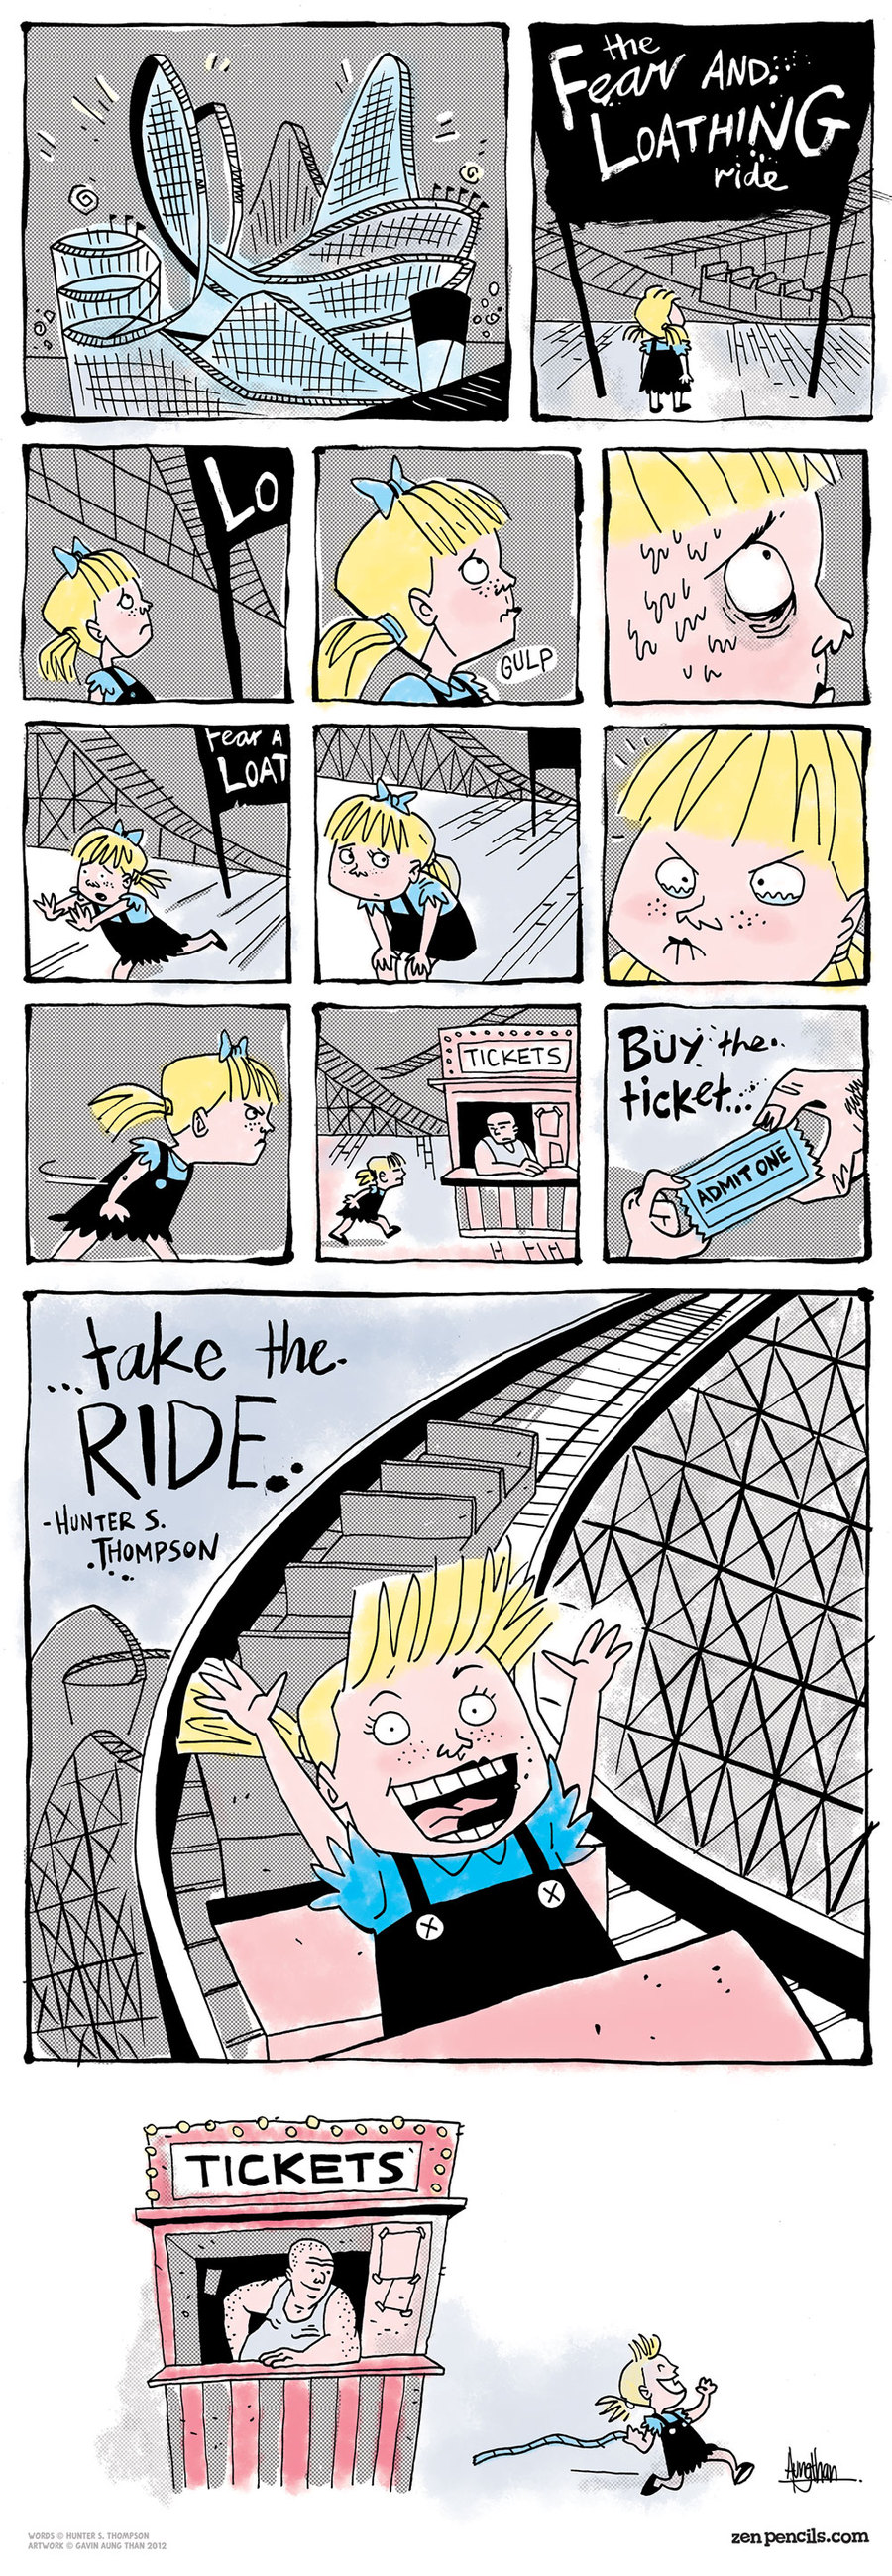 Zen Pencils for Aug 12, 2013 Comic Strip